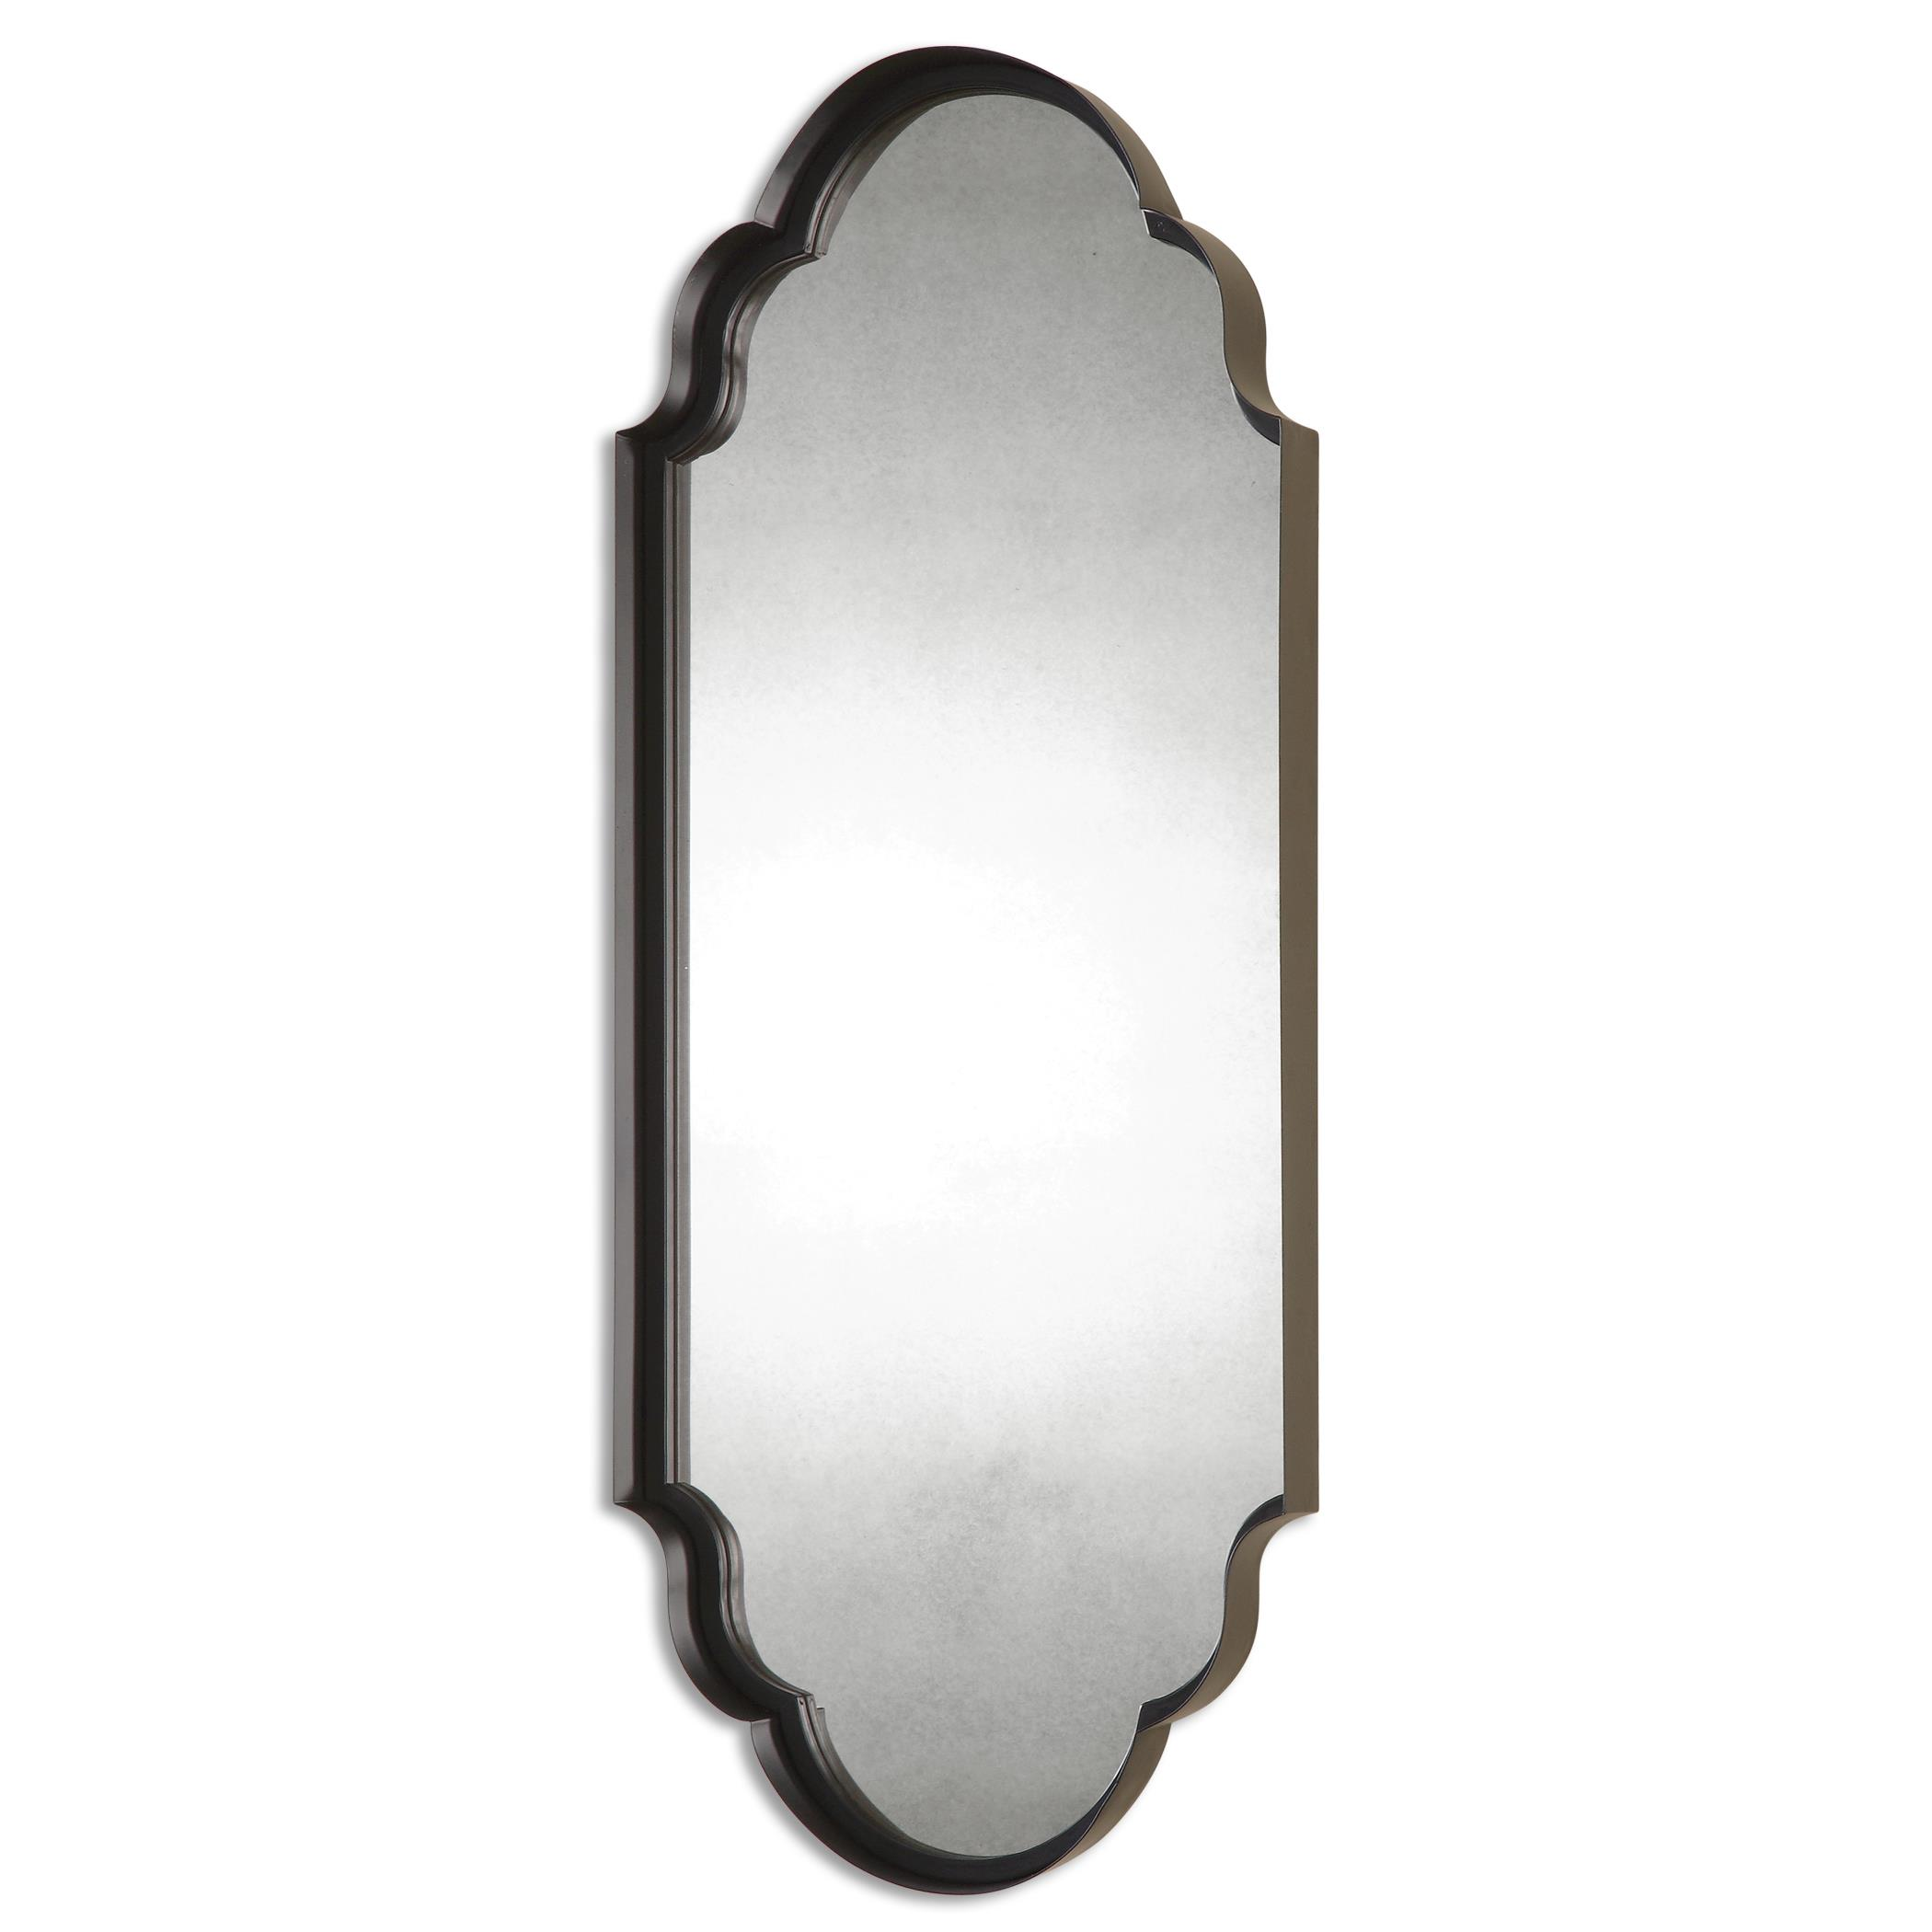 Uttermost Mirrors Lamia Curved Metal Mirror - Item Number: 13933